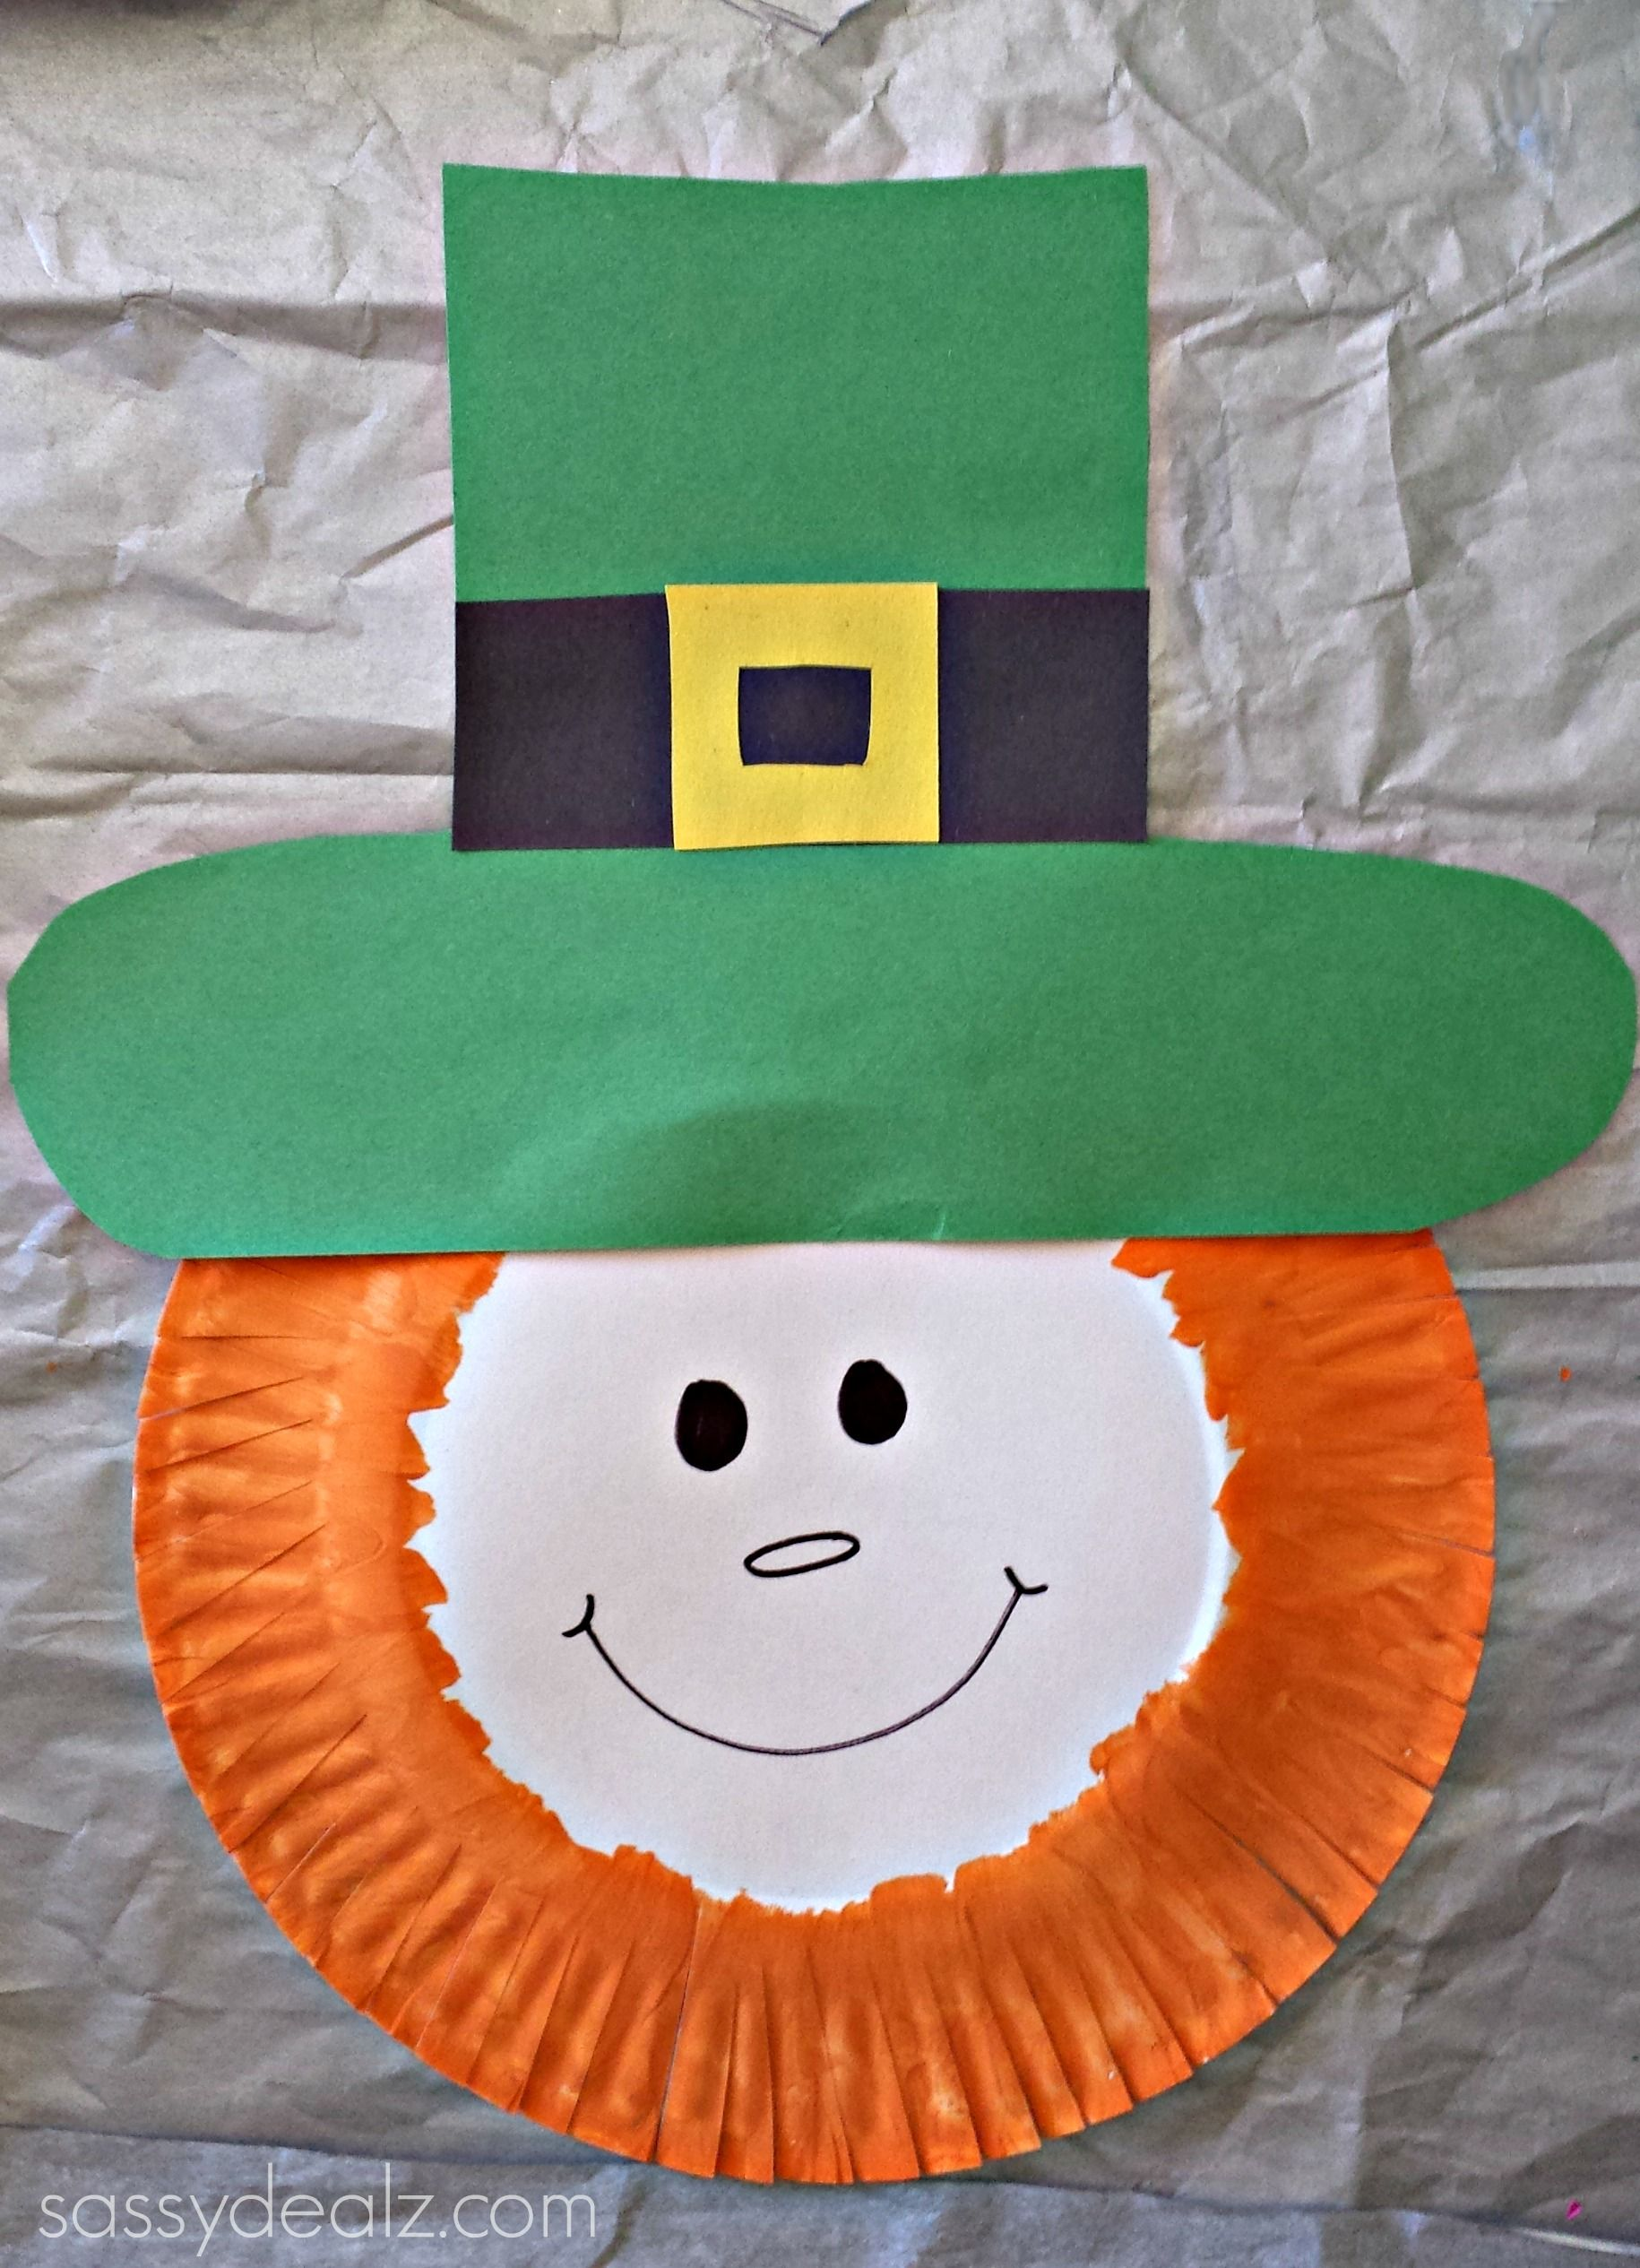 St patricks day preschool crafts - Popsicle Stick Leprechaun Popsicle Stick Crafts For Kids Popsicles Girls Life And Magnets